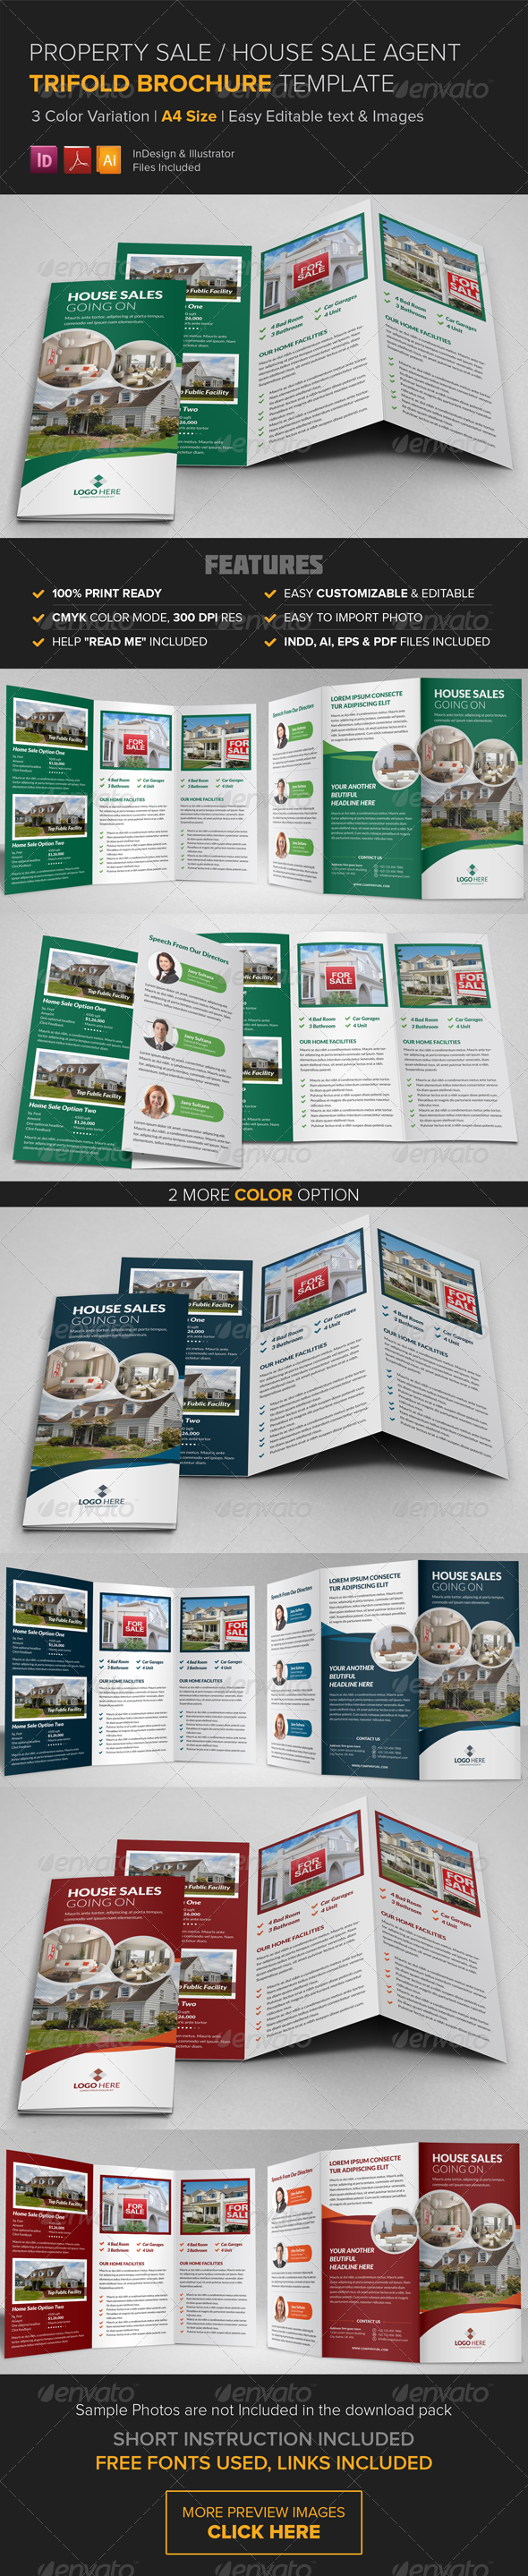 Property Sale Trifold Brochure Template By JanySultana GraphicRiver - Sales brochure template